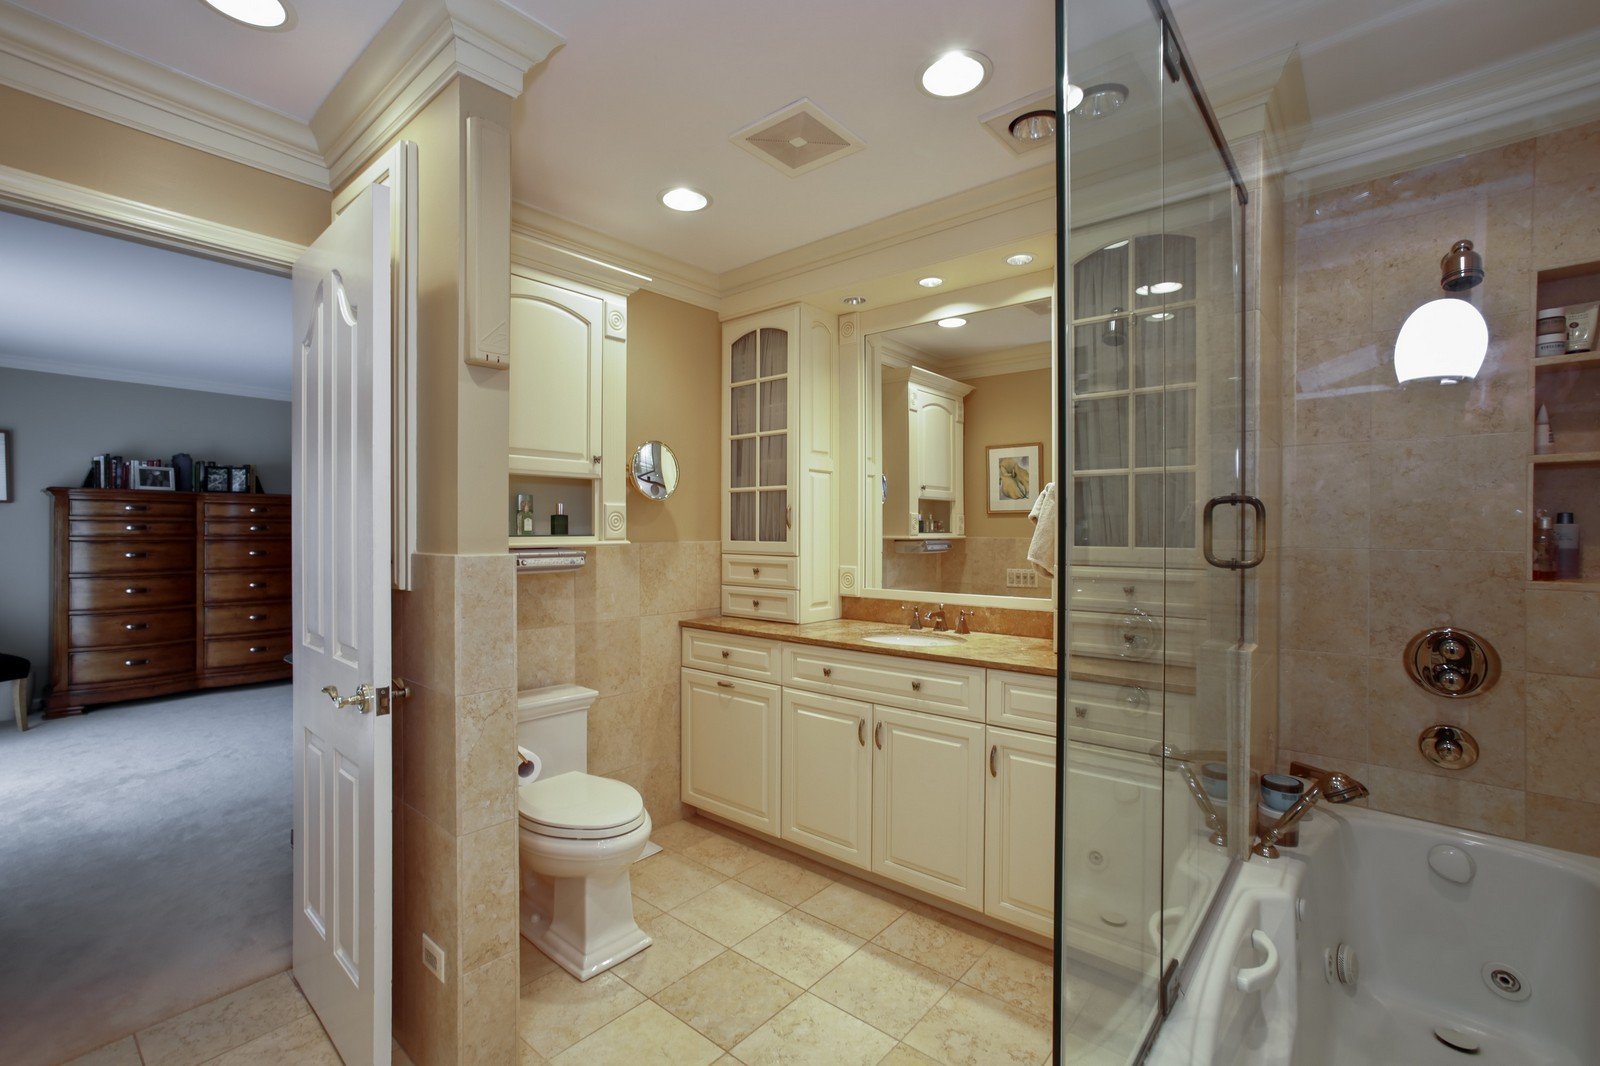 Real Estate Photography - 25W445 Plamondon Rd, Wheaton, IL, 60189 - Master Bath - Hers